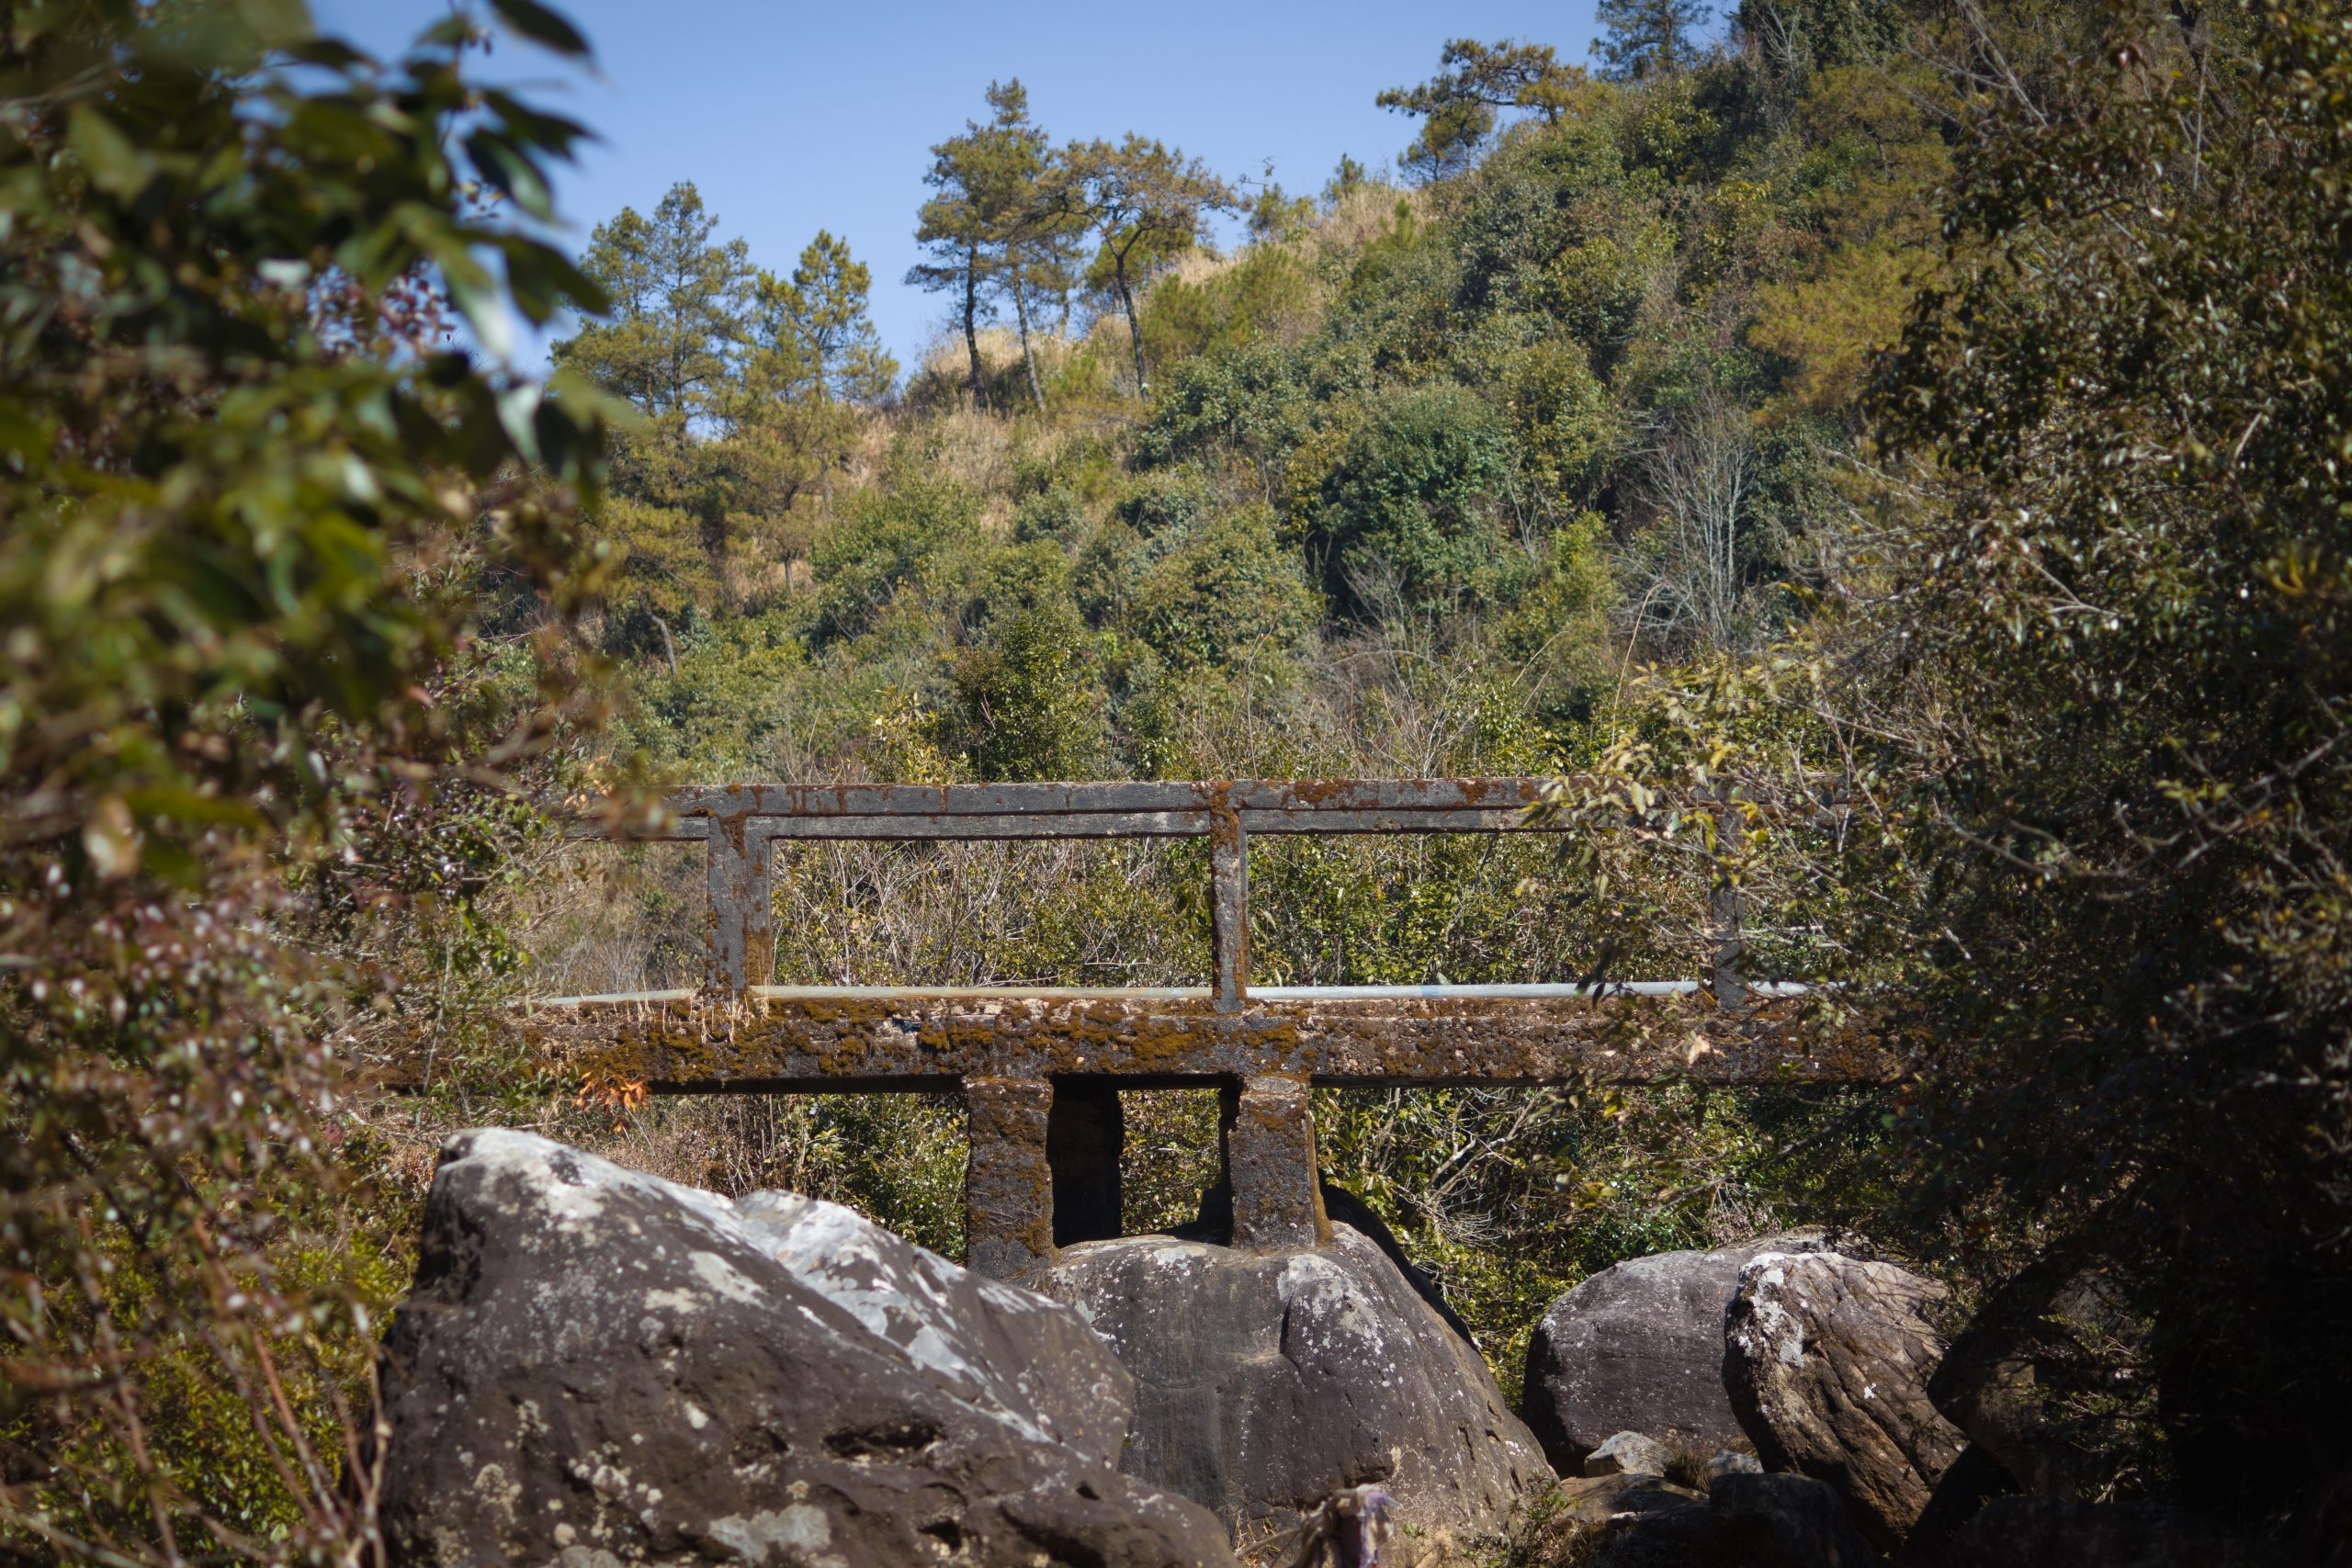 An old bridge and rocks in a jungle